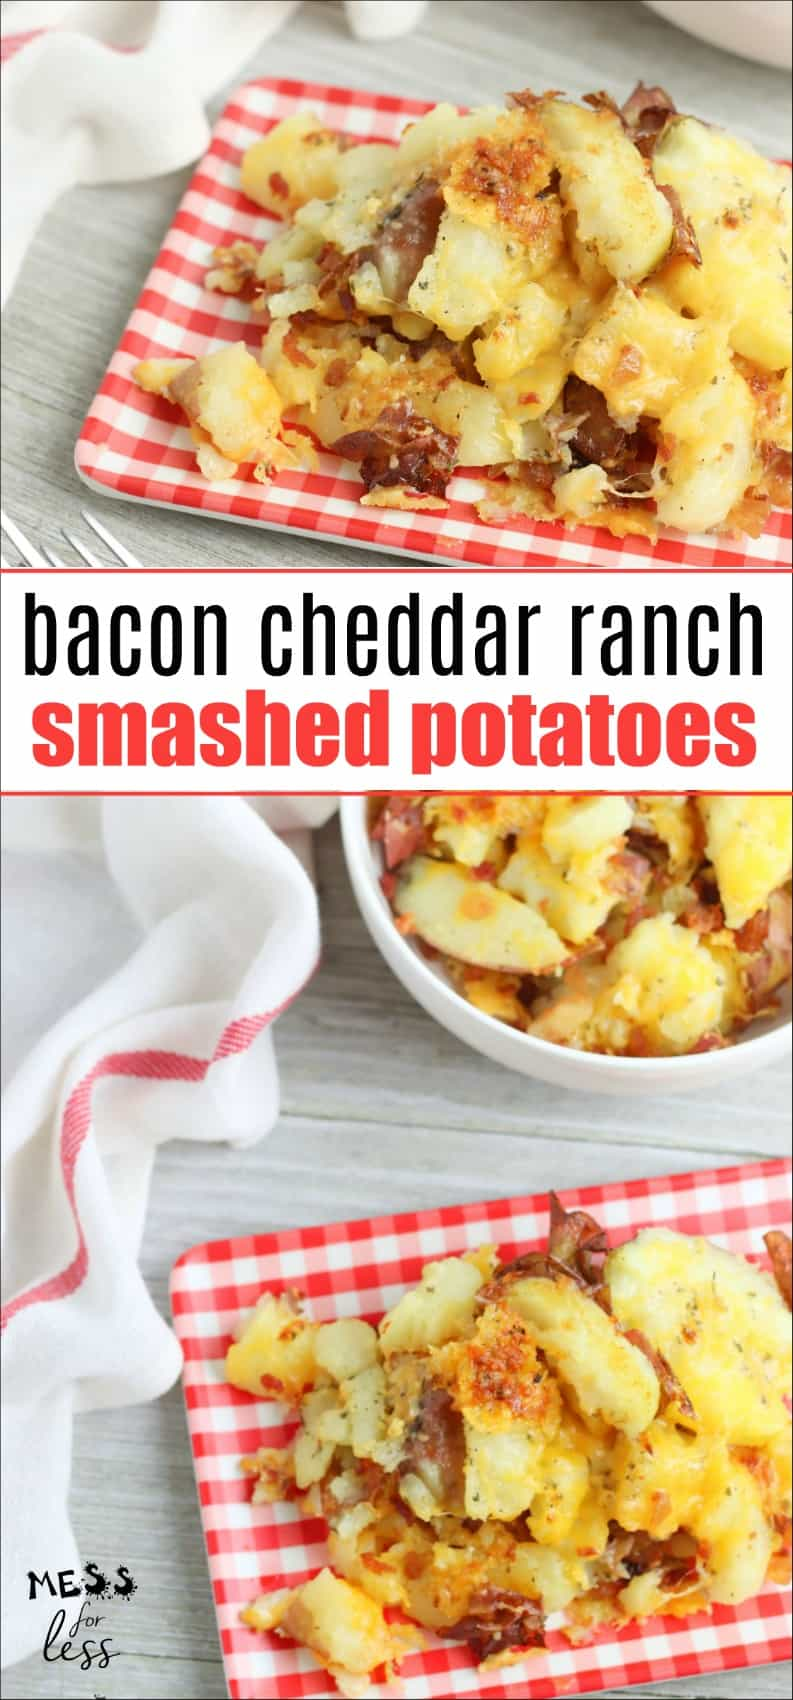 These Bacon Cheddar Ranch Smashed Potatoes make the perfect side dish and cook up in just 30 minutes. Your family will ask for them again and again! #smashedpotatoes #potatoes #easysidedish #potatorecipe